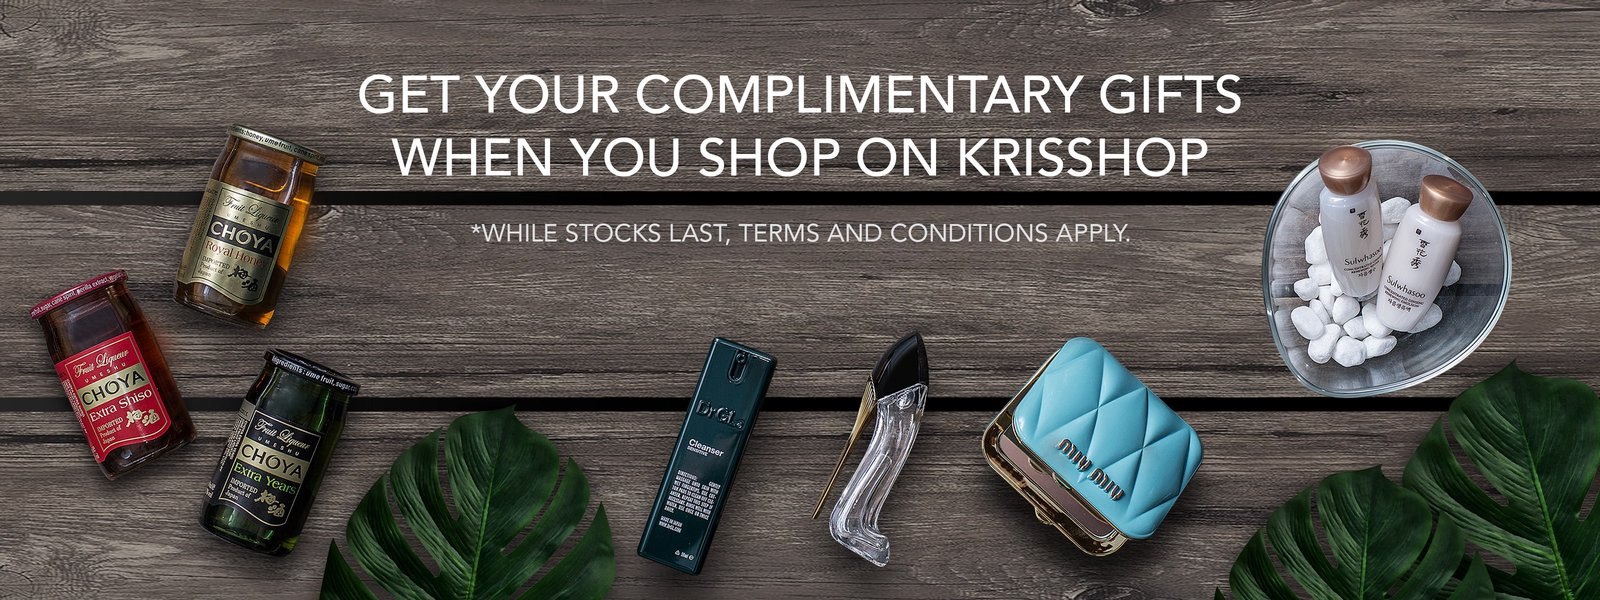 KrisShop Gift with Purchase